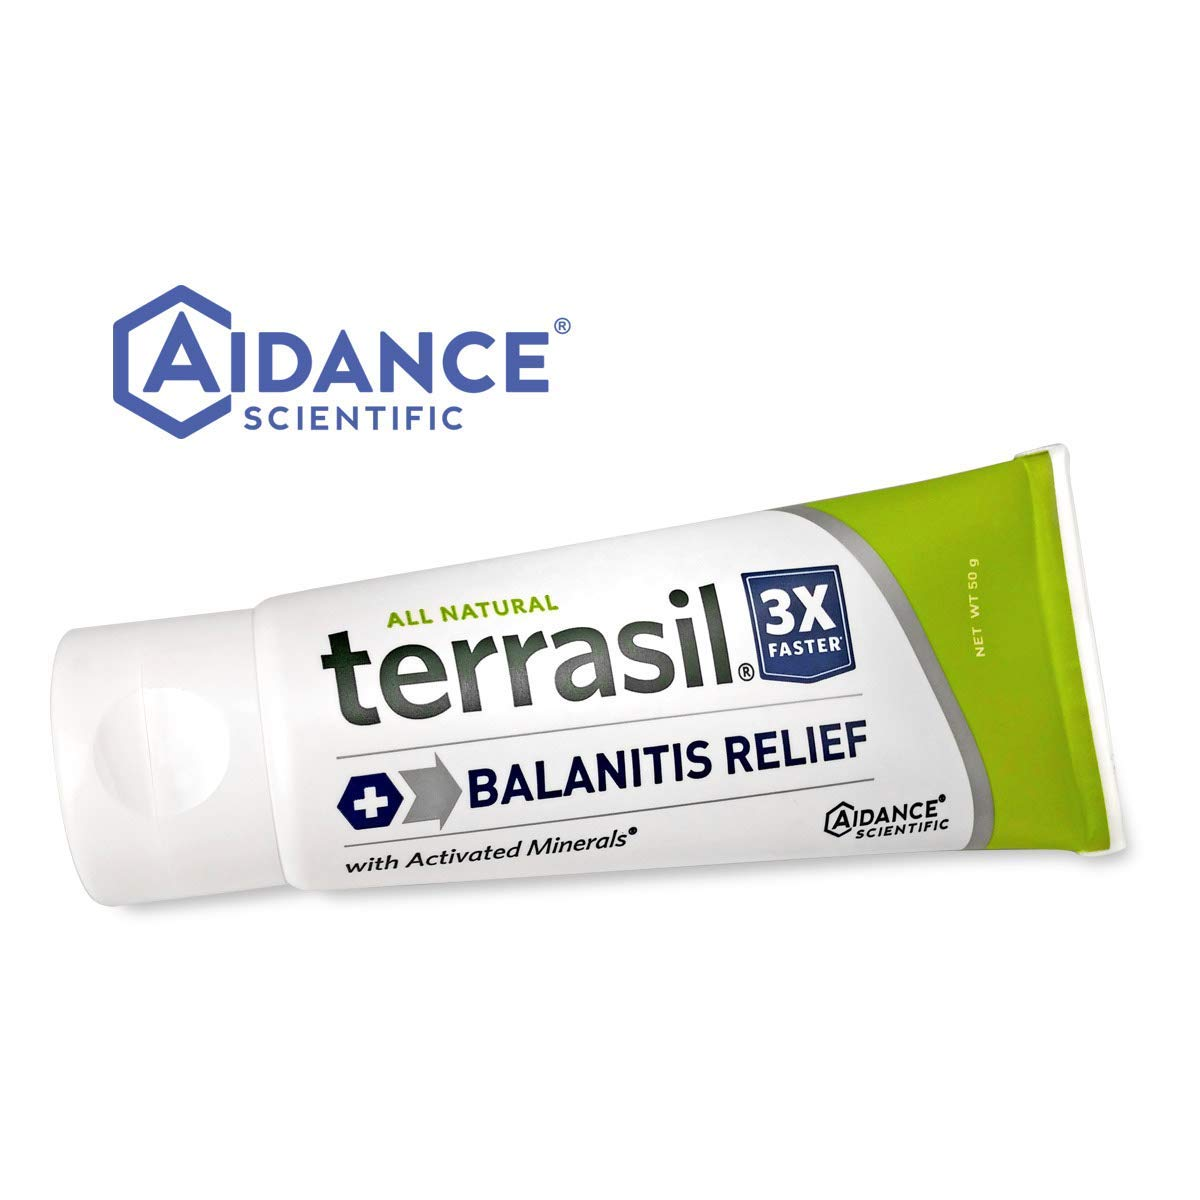 Terrasil® Balanitis Relief - 100% Guaranteed, Patented All-Natural, Gentle, Soothing Skin Relief Ointment for Relief from Irritation, Itch, Redness and Inflammation, Balanitis Symptoms (50 Gram Tube) by Aidance Skincare & Topical Solutions